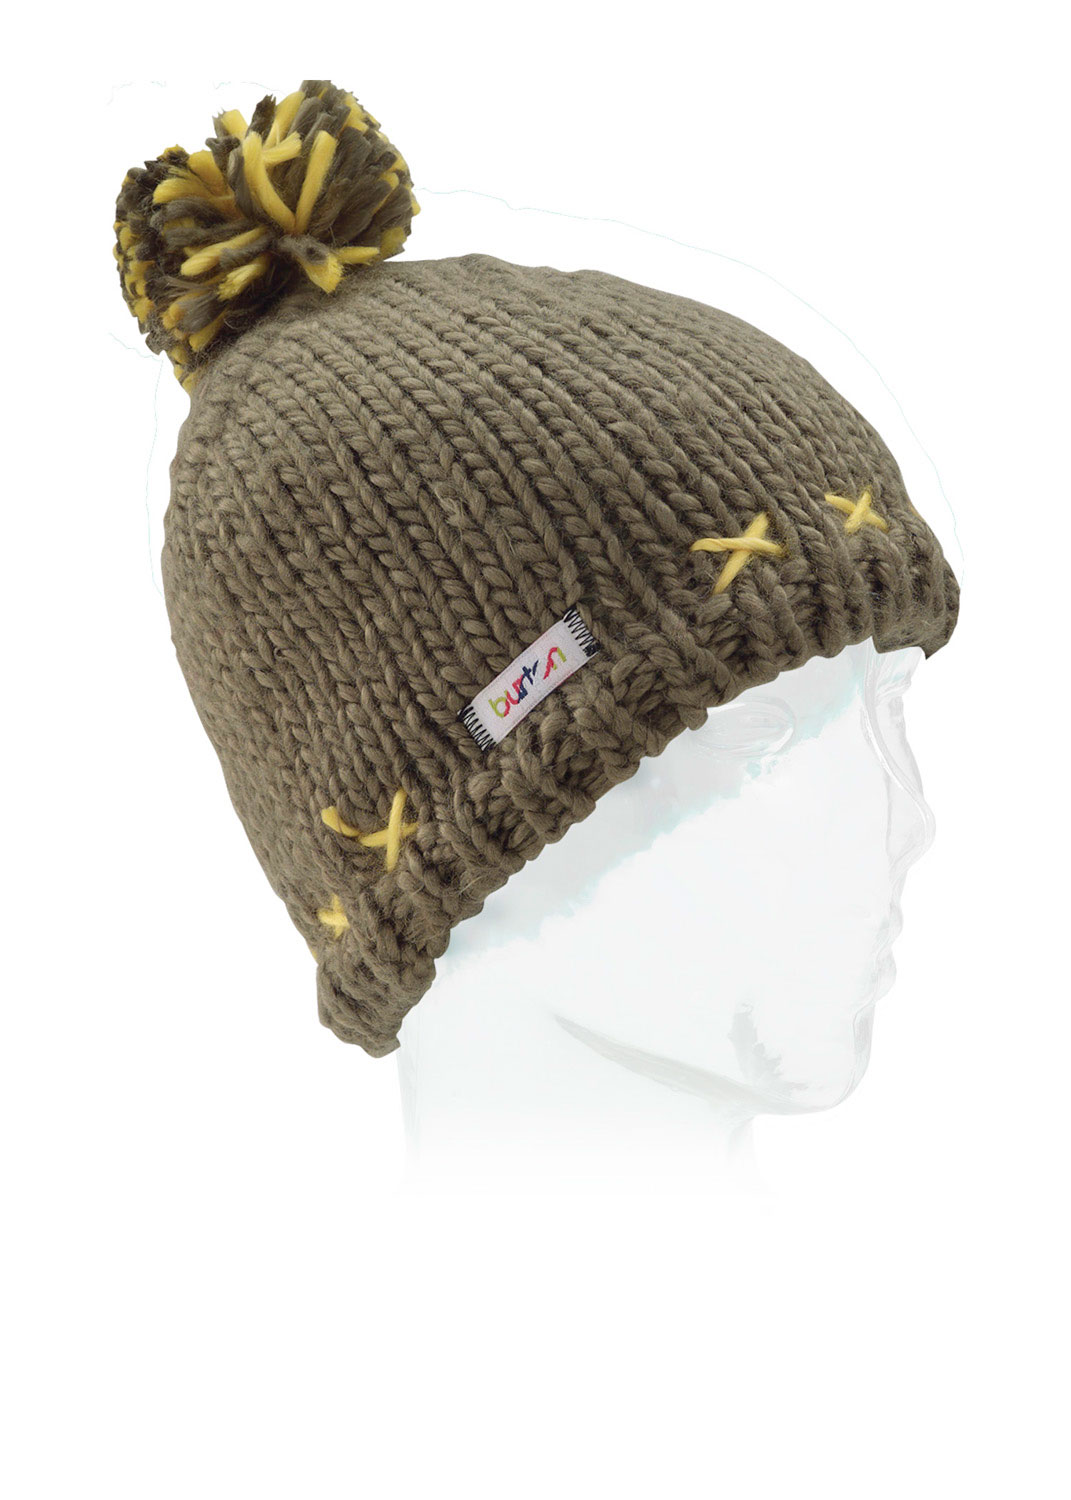 Snowboard This softly knit cap is actually pretty with a woven, contrast color, X style design around the lower edge, a multi-colored pom pom on top and a ribbing finish, you can step out in style on the slopes. This is one of the cutest beanies ever. Referred to as a skully fit, the cap fits snug to the head and over the ears and brows to keep you warm. A Burton Beanie will please everyone on your list, whether you are going on a sports trip or buying gifts for someone who is. - $12.56